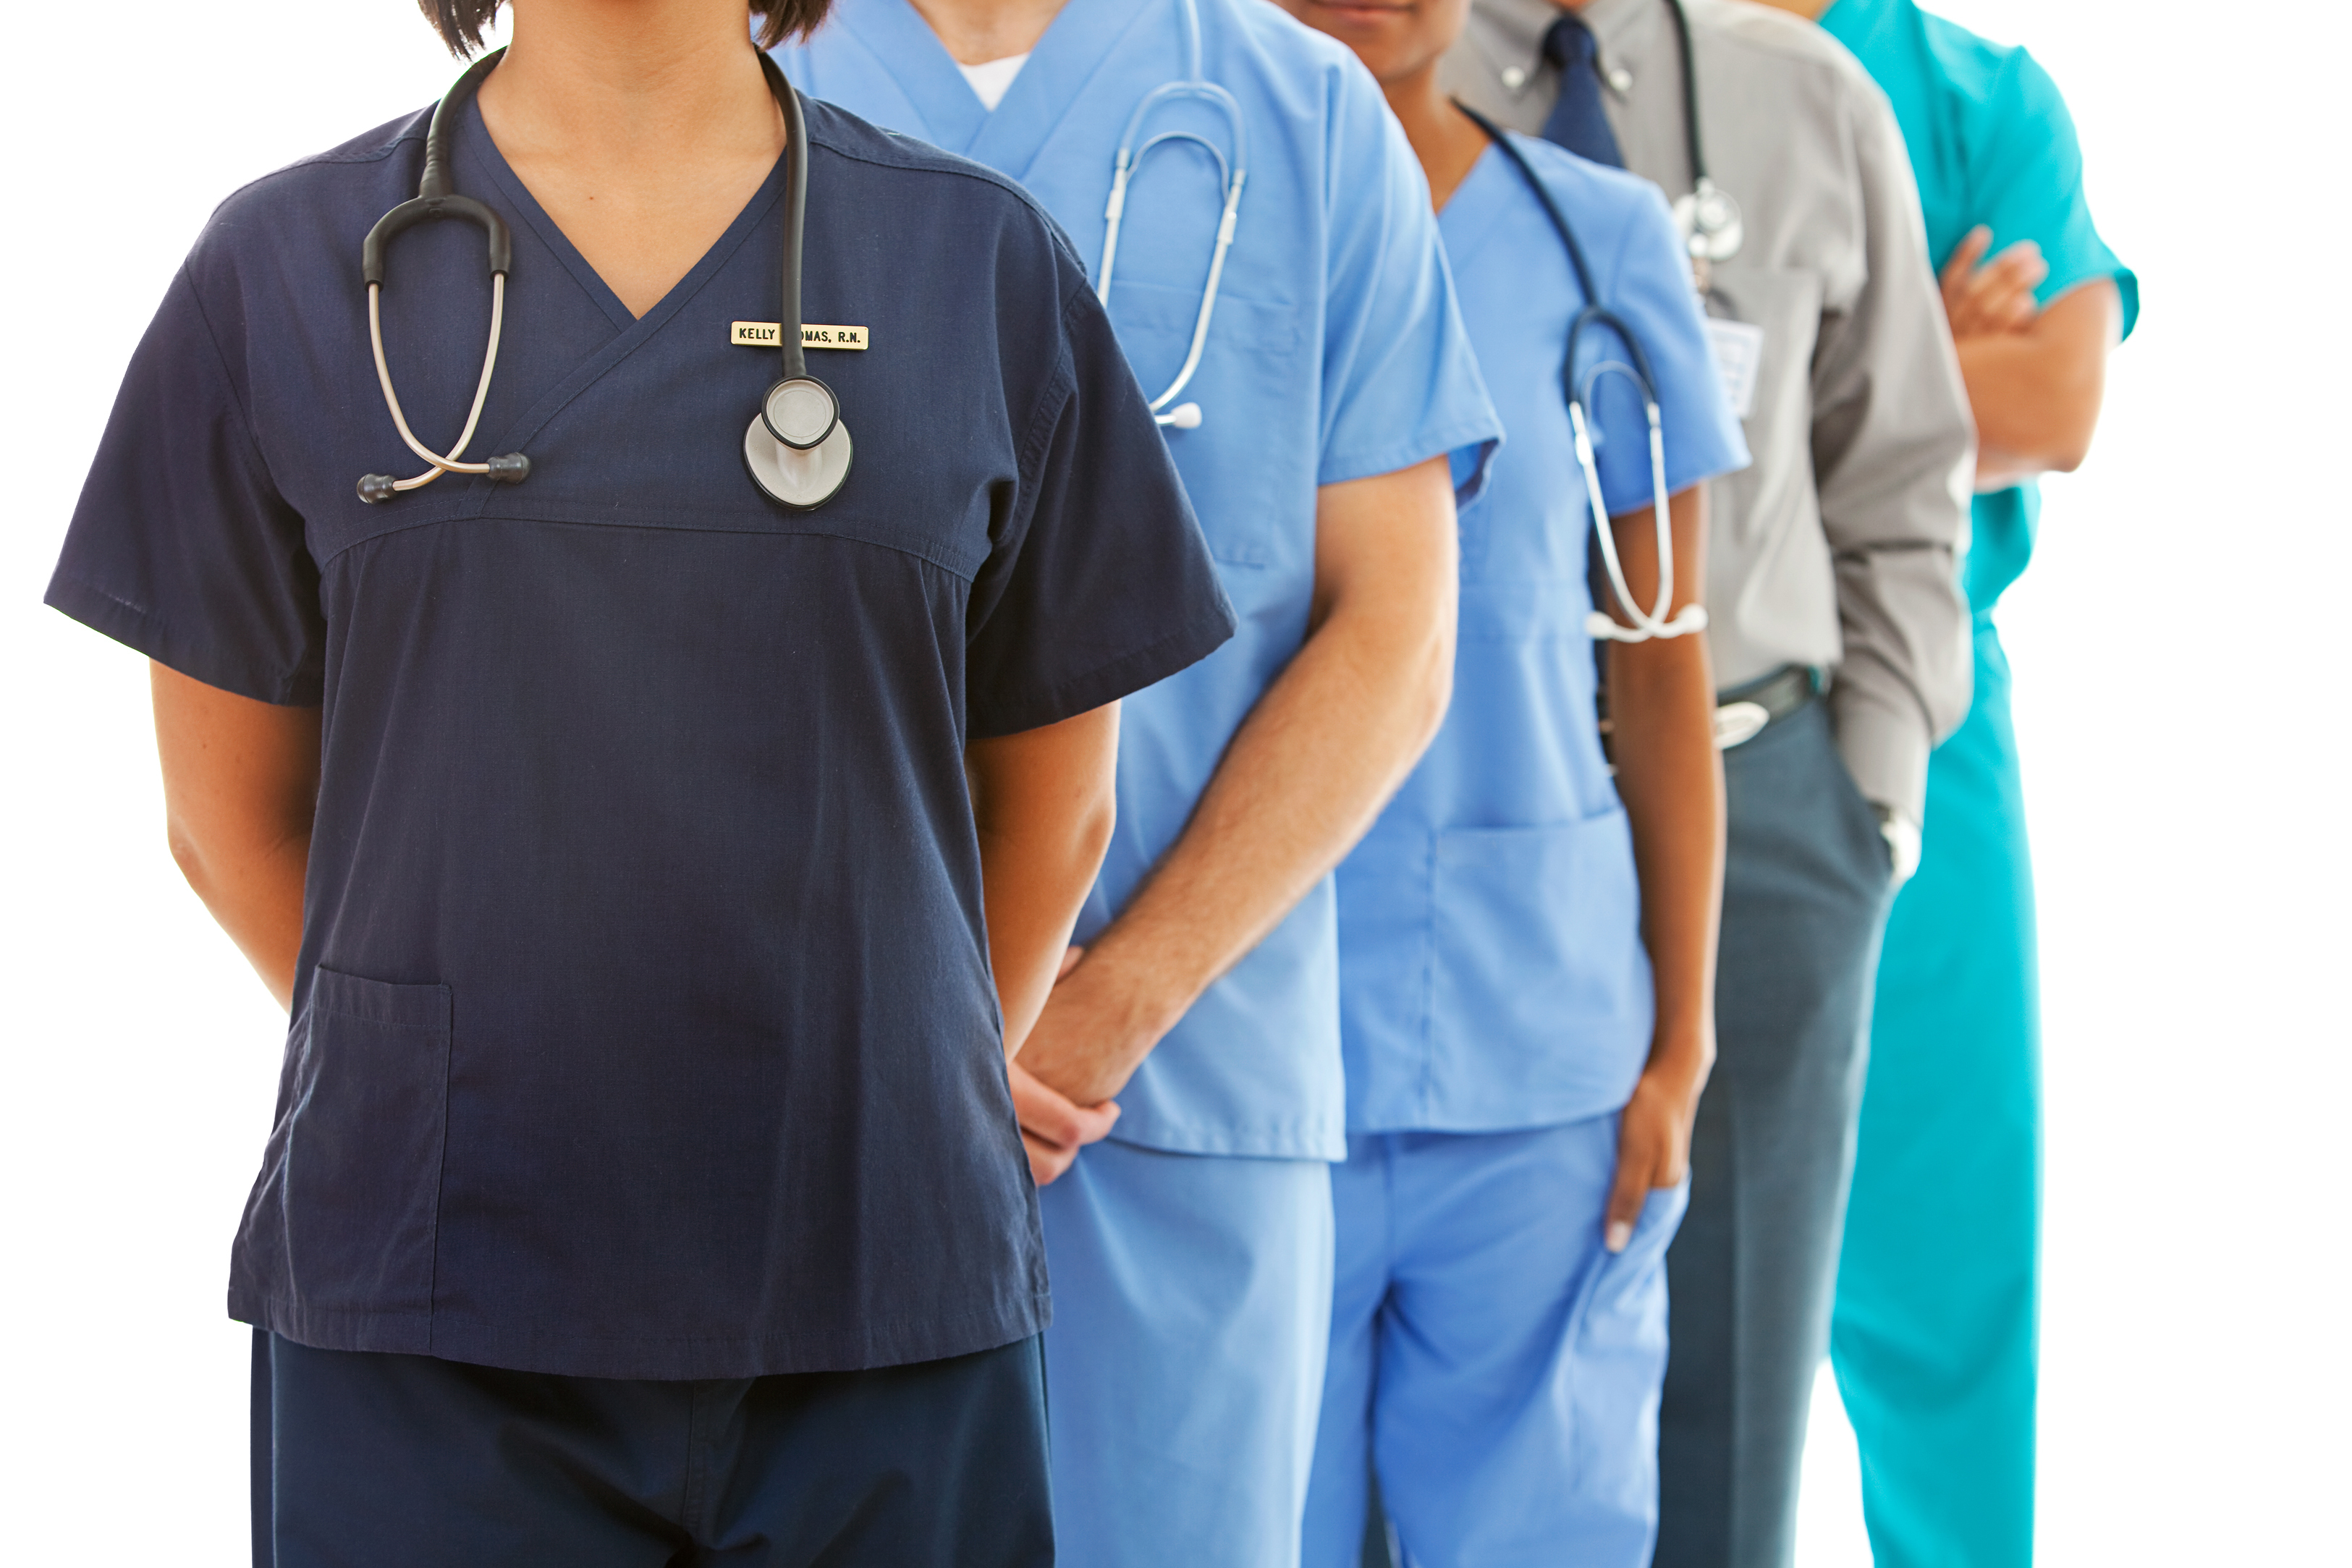 A selection of medical staff